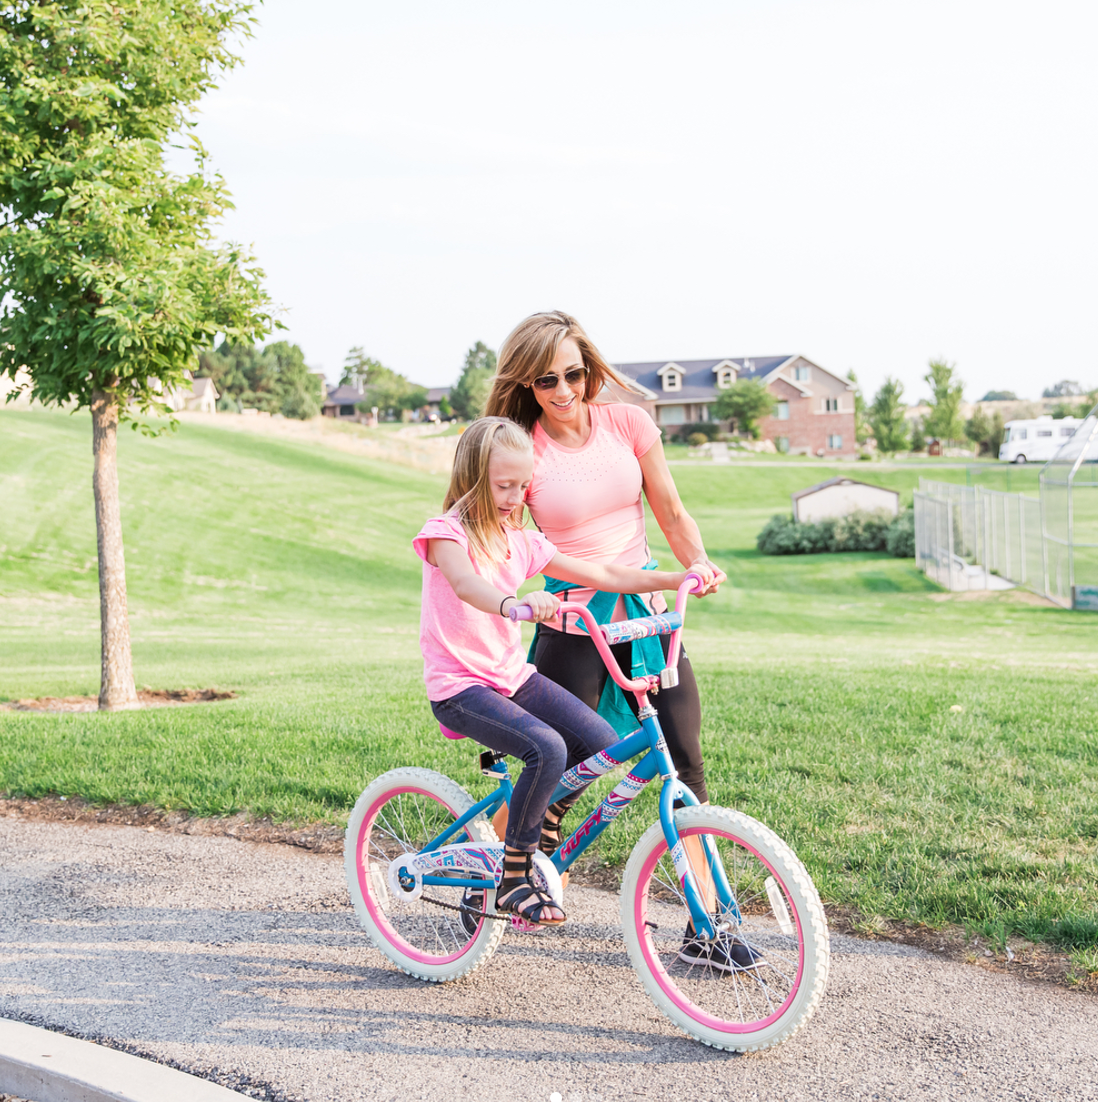 lisa helping daughter ride a bike